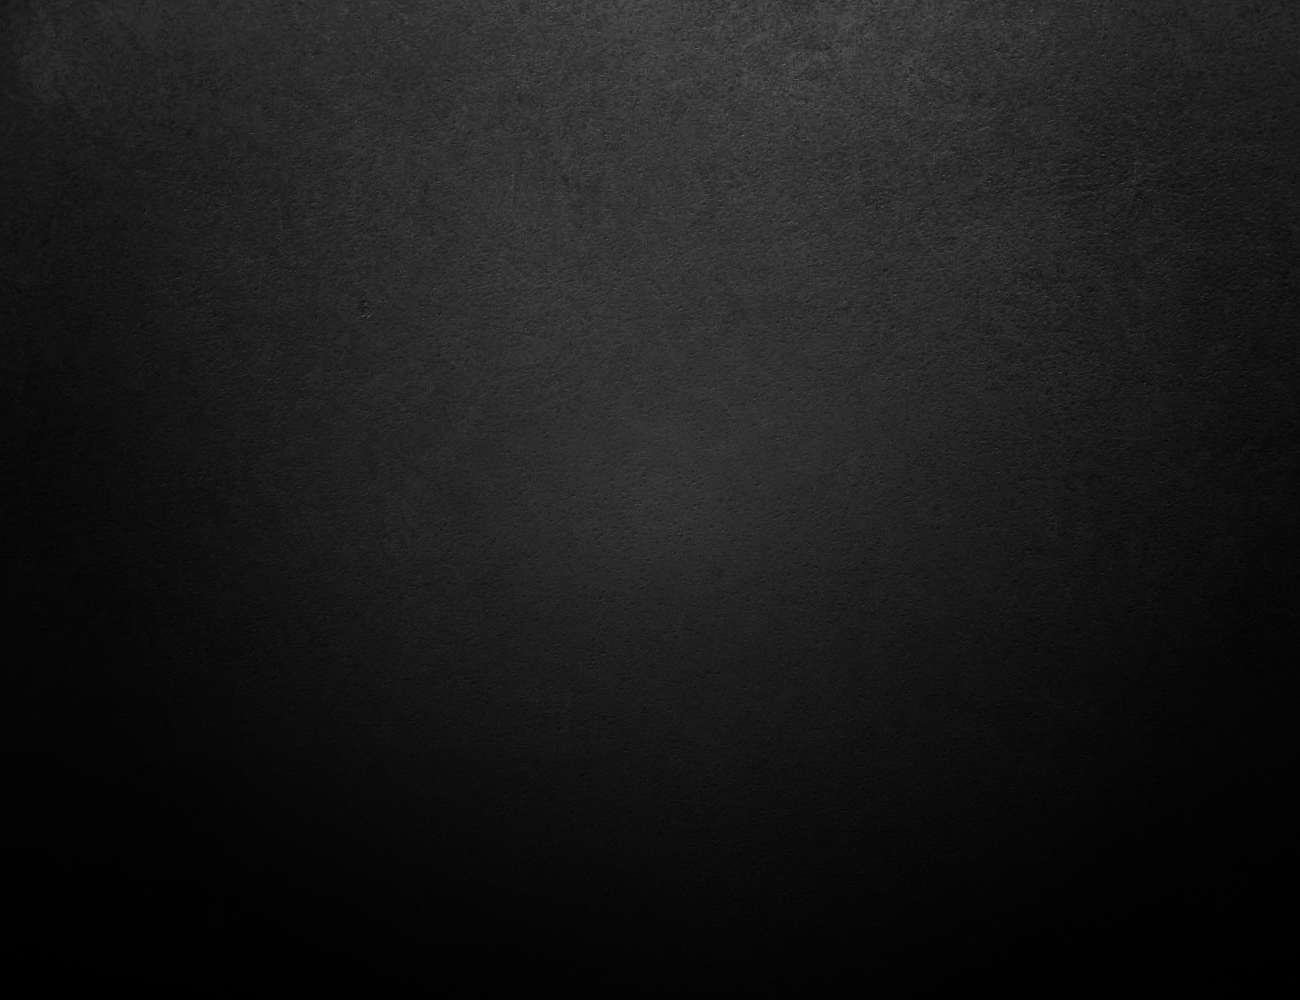 Black Gradient Background Texture Textures gradient wallpaper 1300x1000